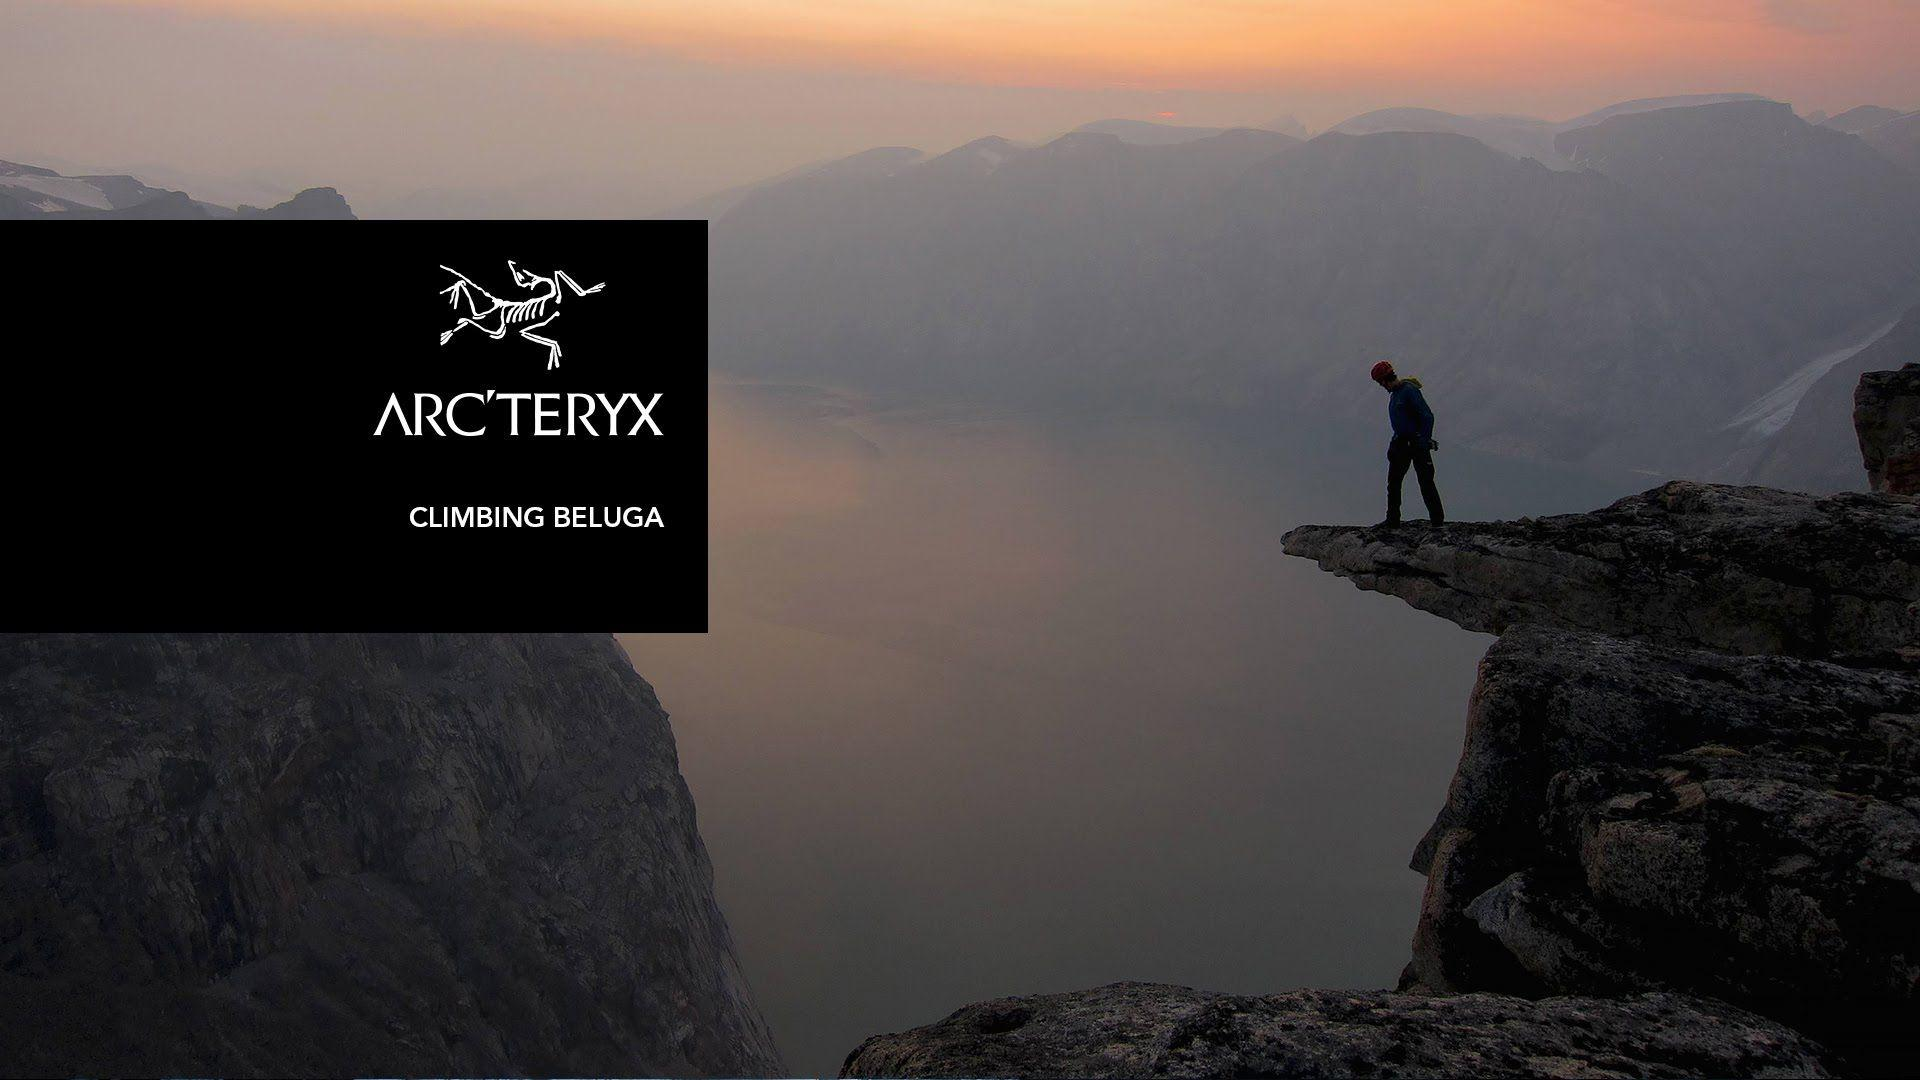 4349b58e0fd Climbing Beluga - An Arc'teryx Film - YouTube